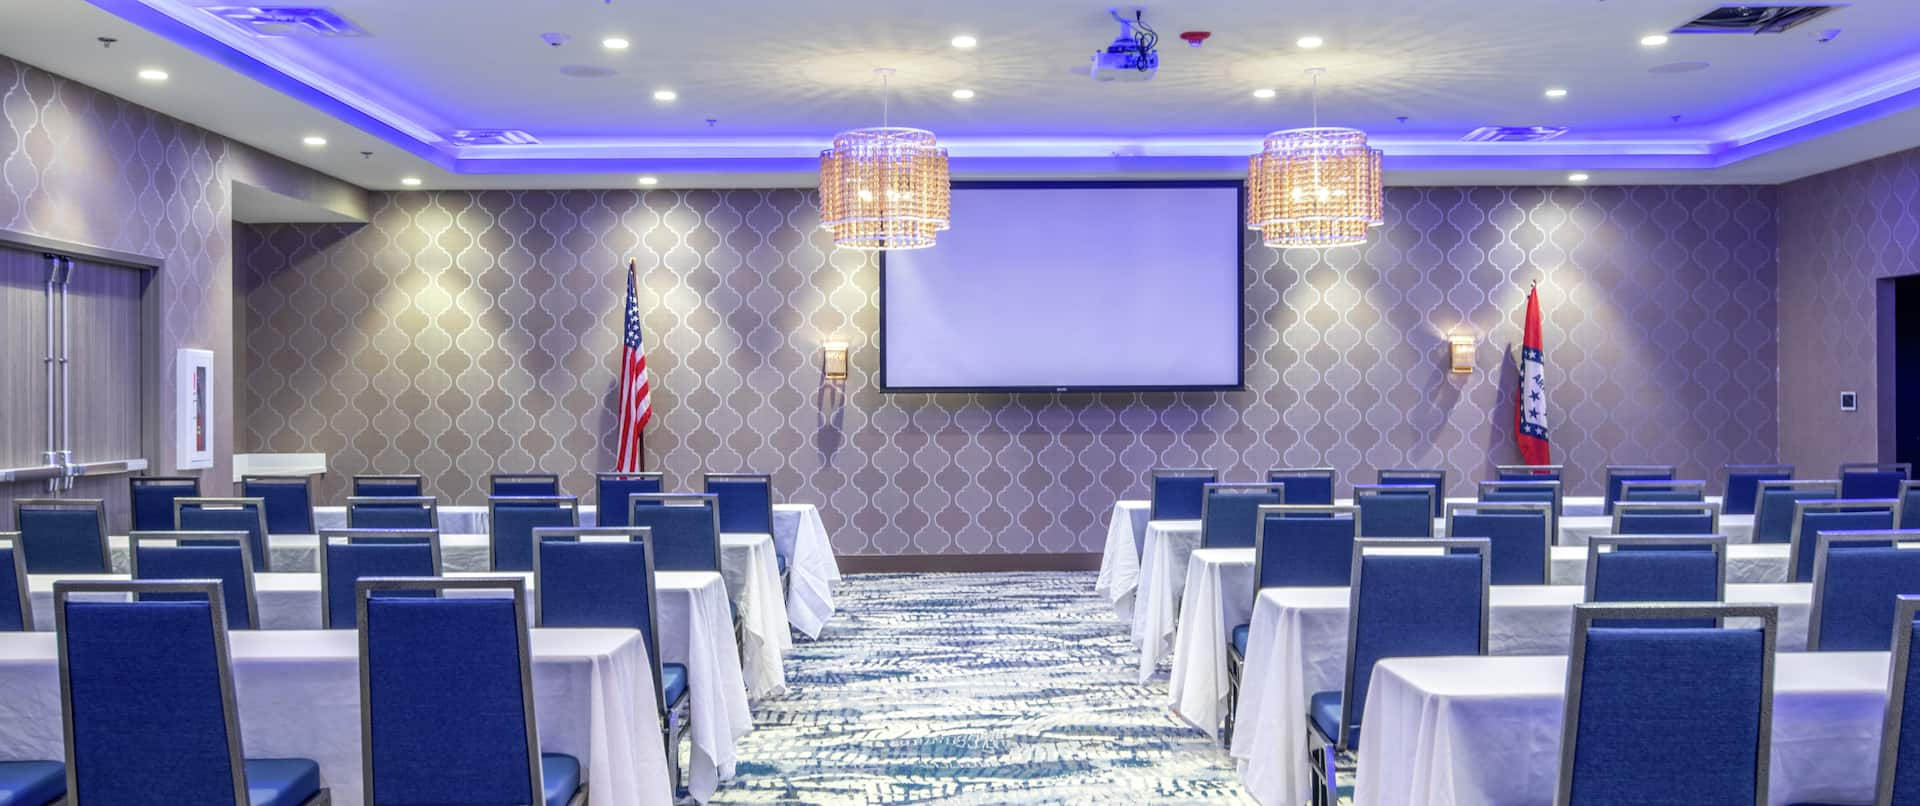 Trifecta Ballroom Setup Classroom Style with Projection Screen